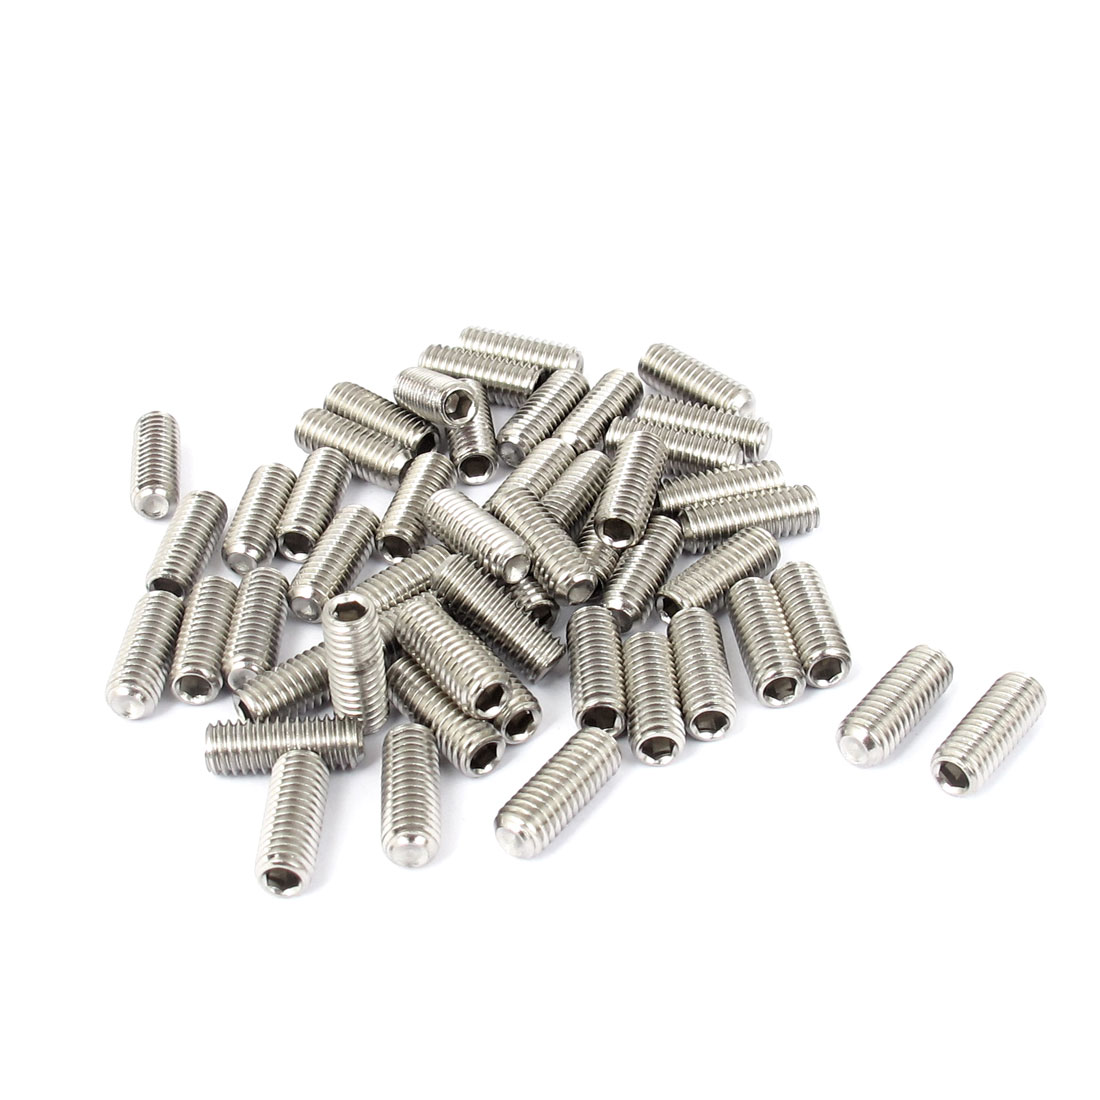 M6x16mm Stainless Steel Hex Socket Set Cup Point Grub Screws Silver Tone 50pcs - image 1 of 1